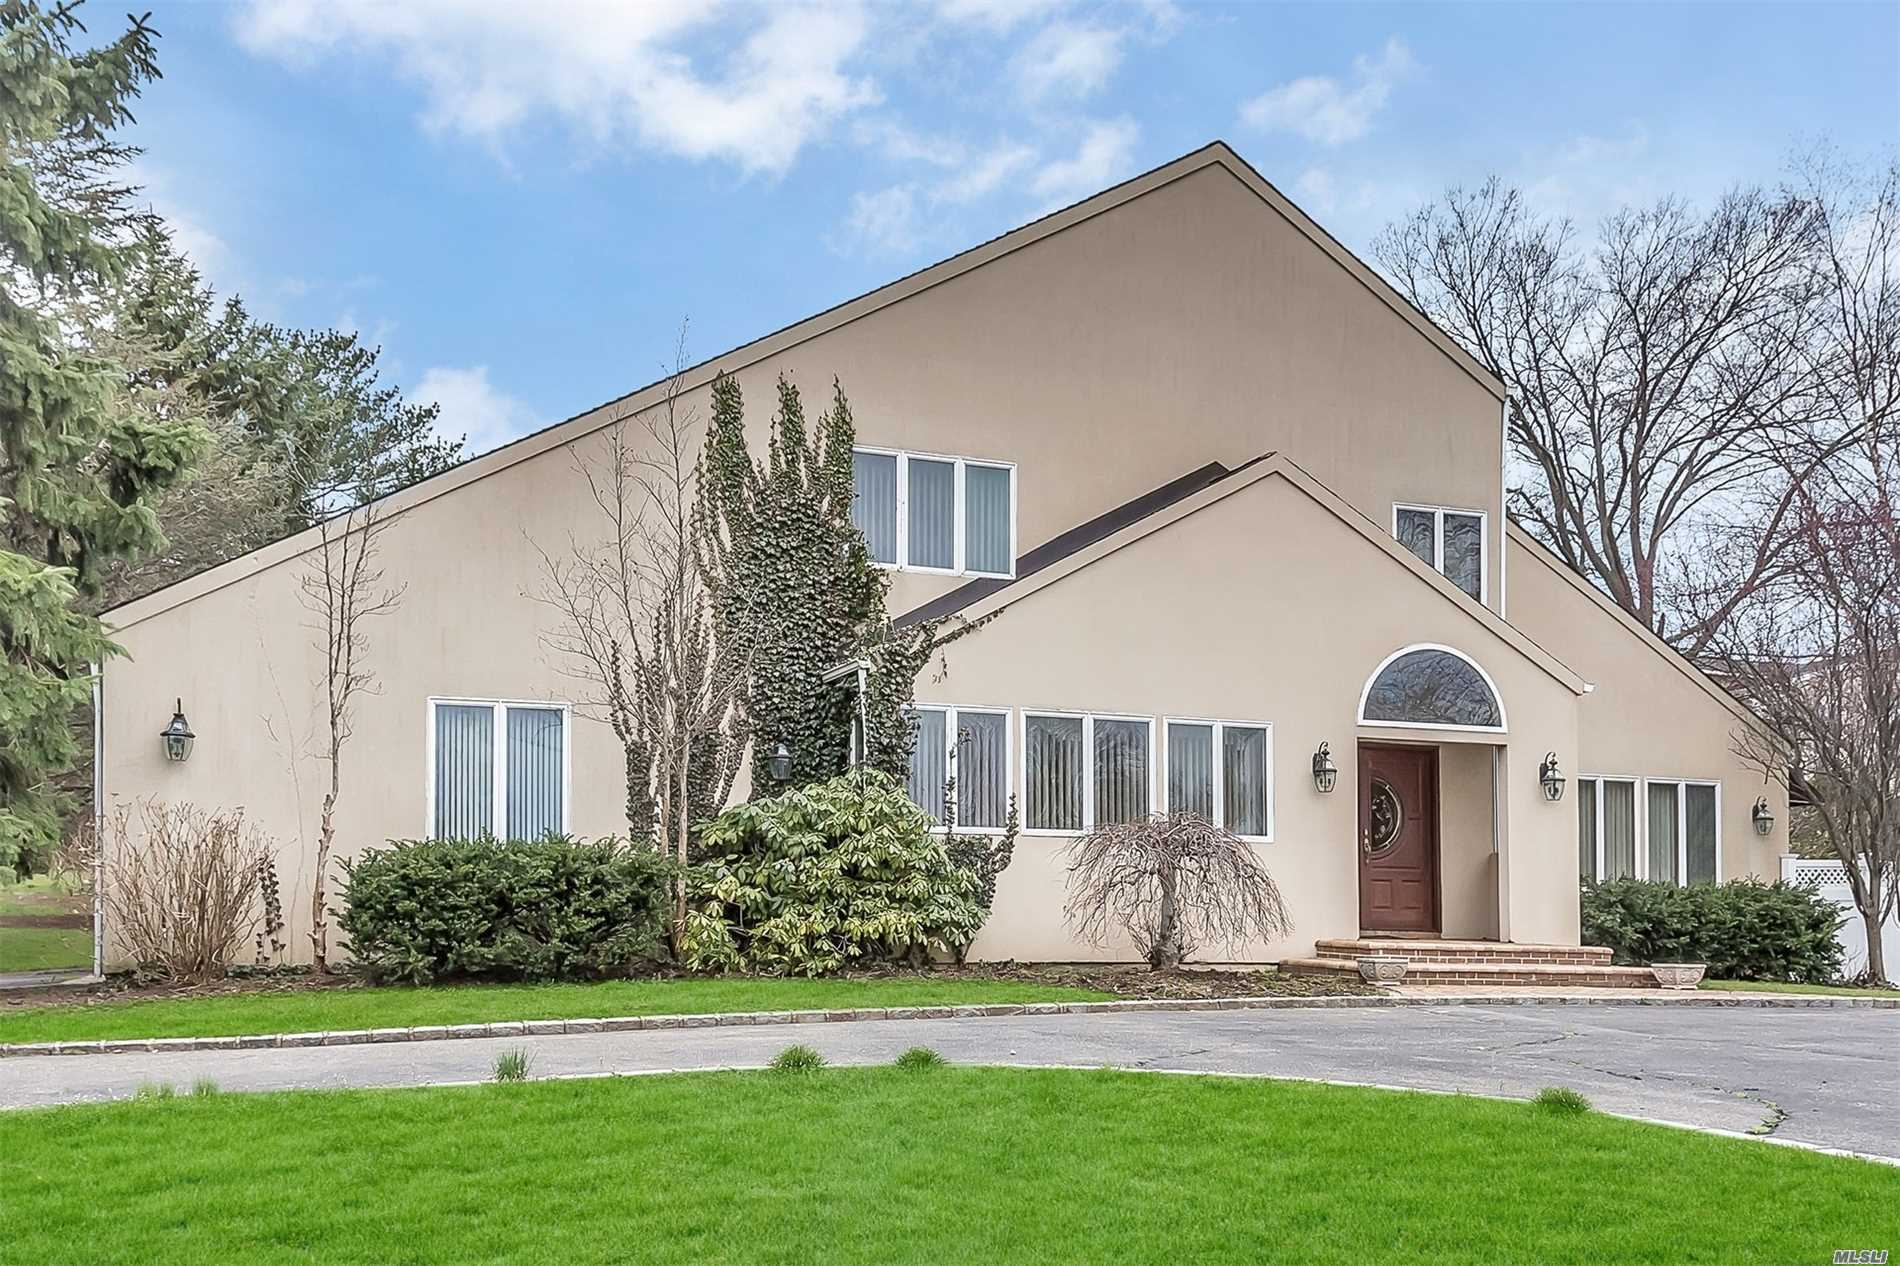 Photo of home for sale at 7 Beatrice Ln, Glen Cove NY